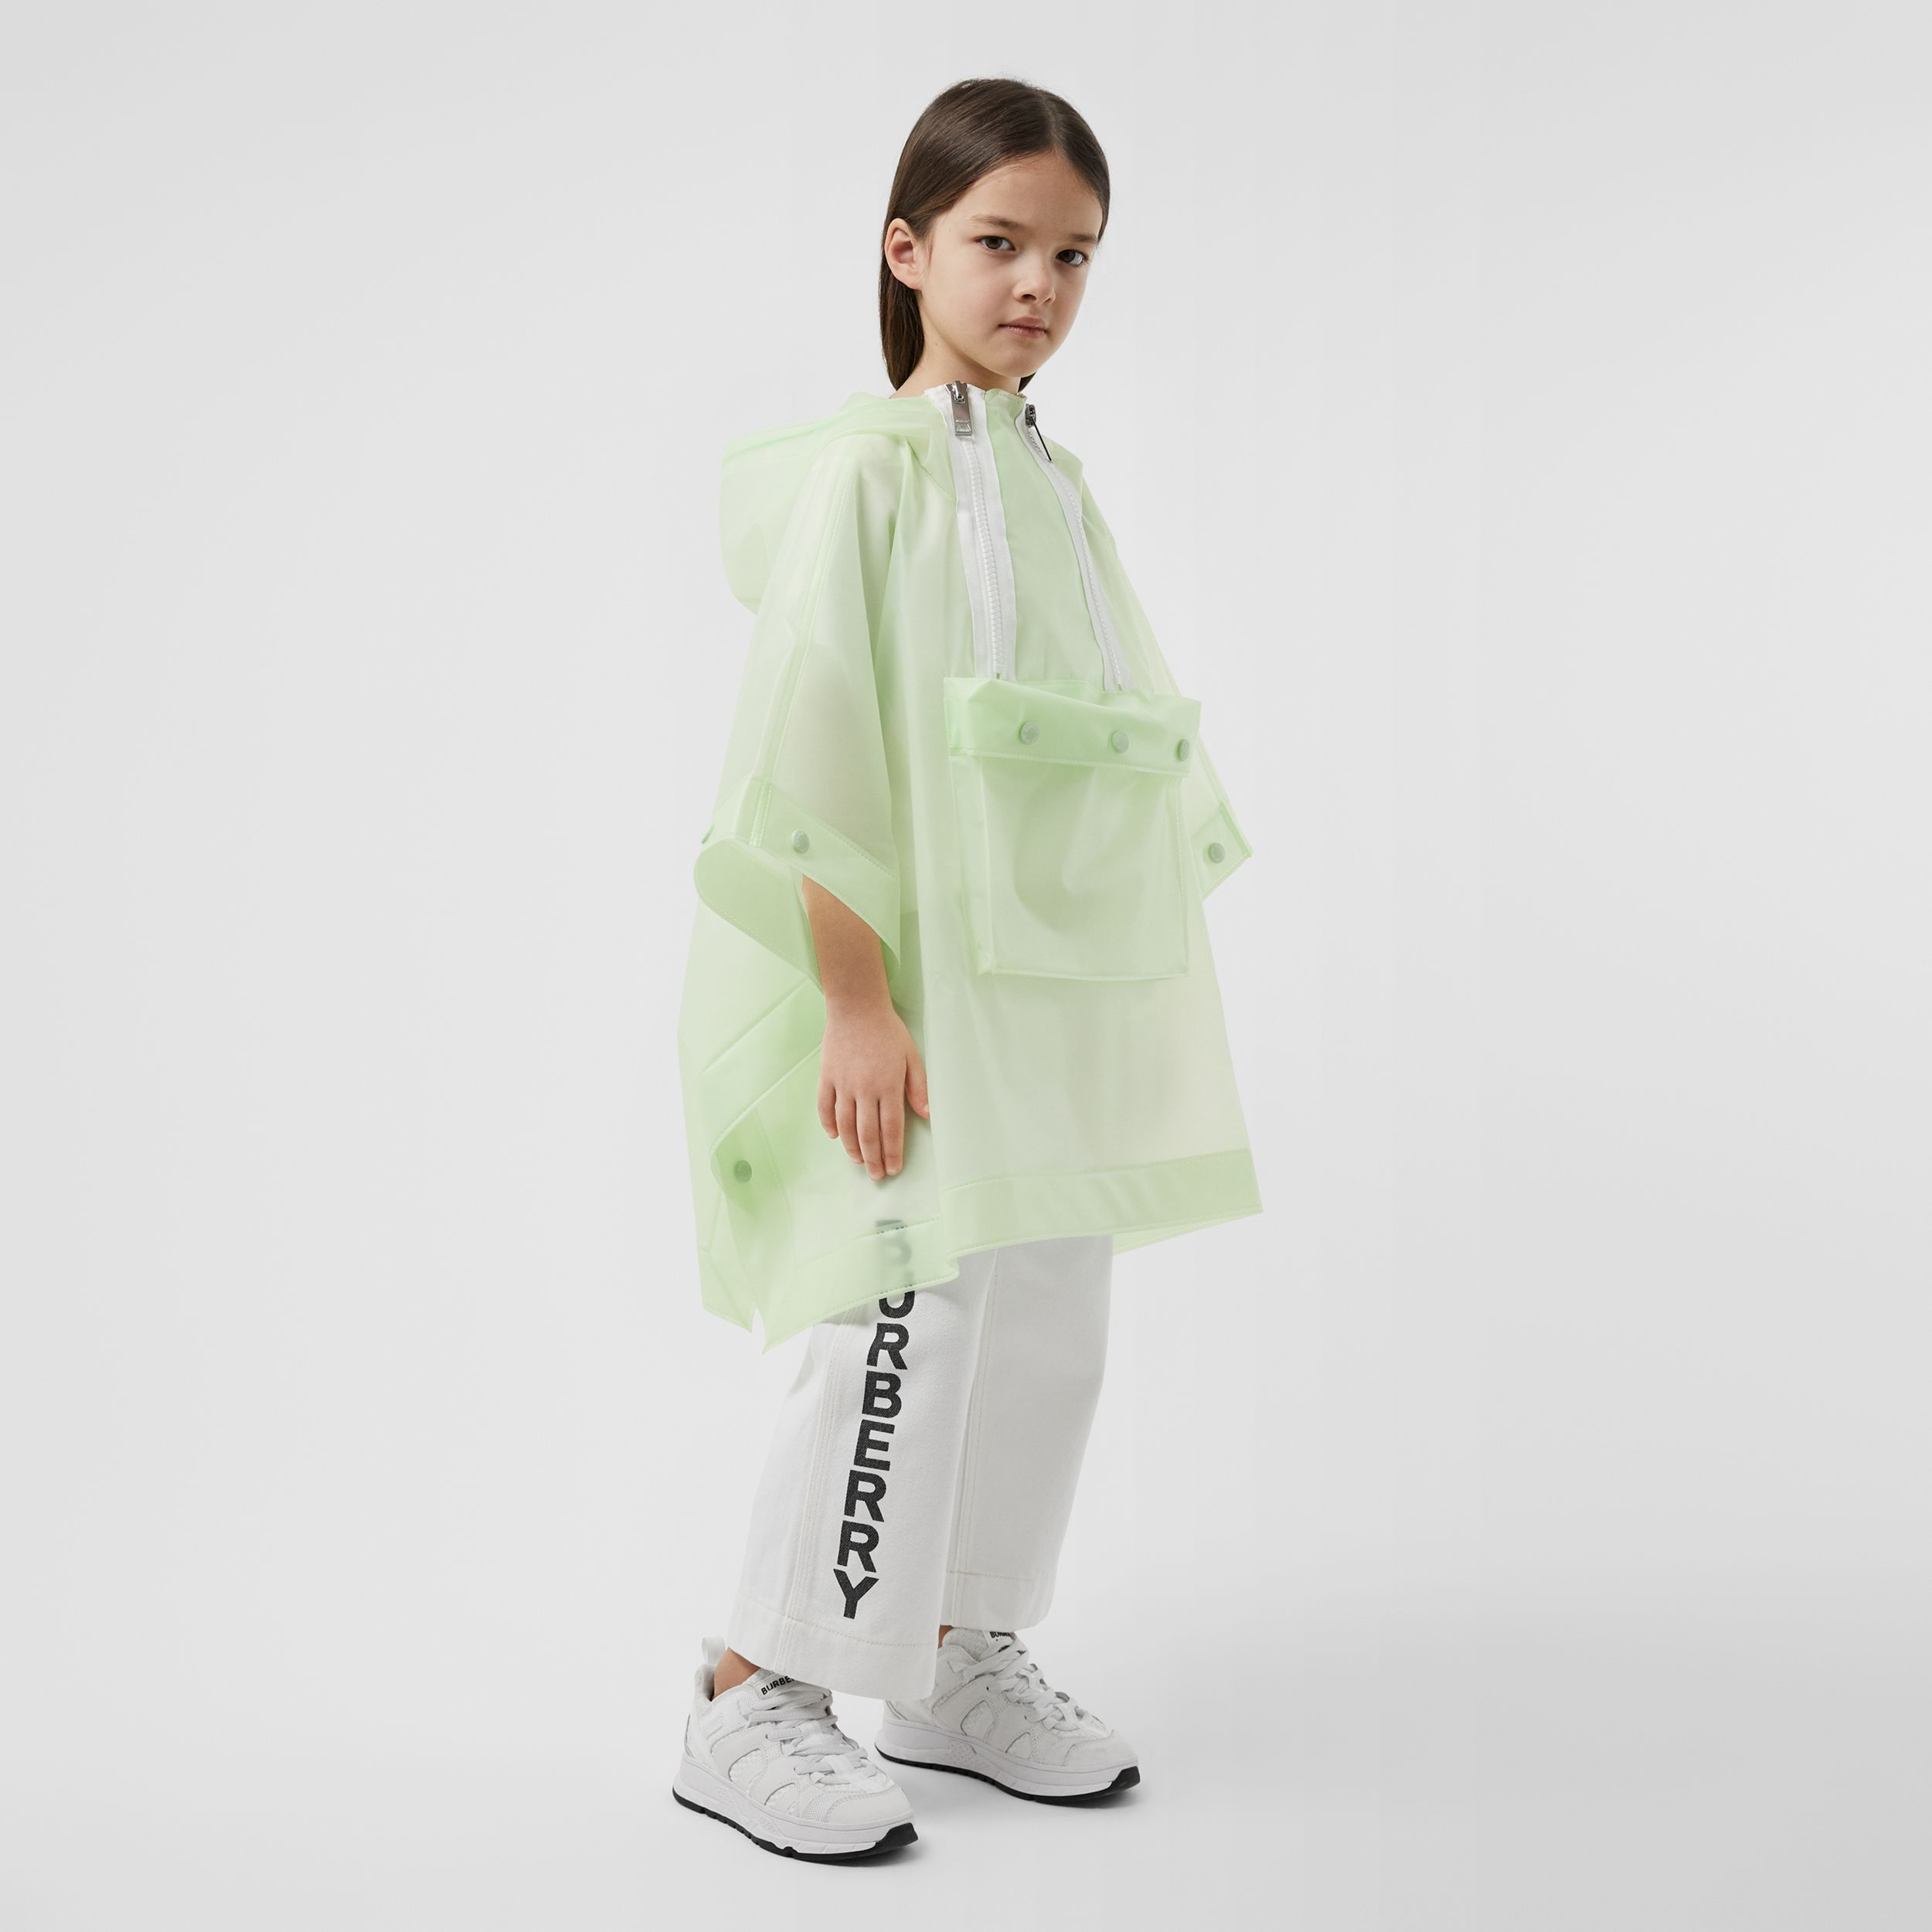 Logo Print Showerproof Hooded Poncho in Pistachio | Burberry - 3